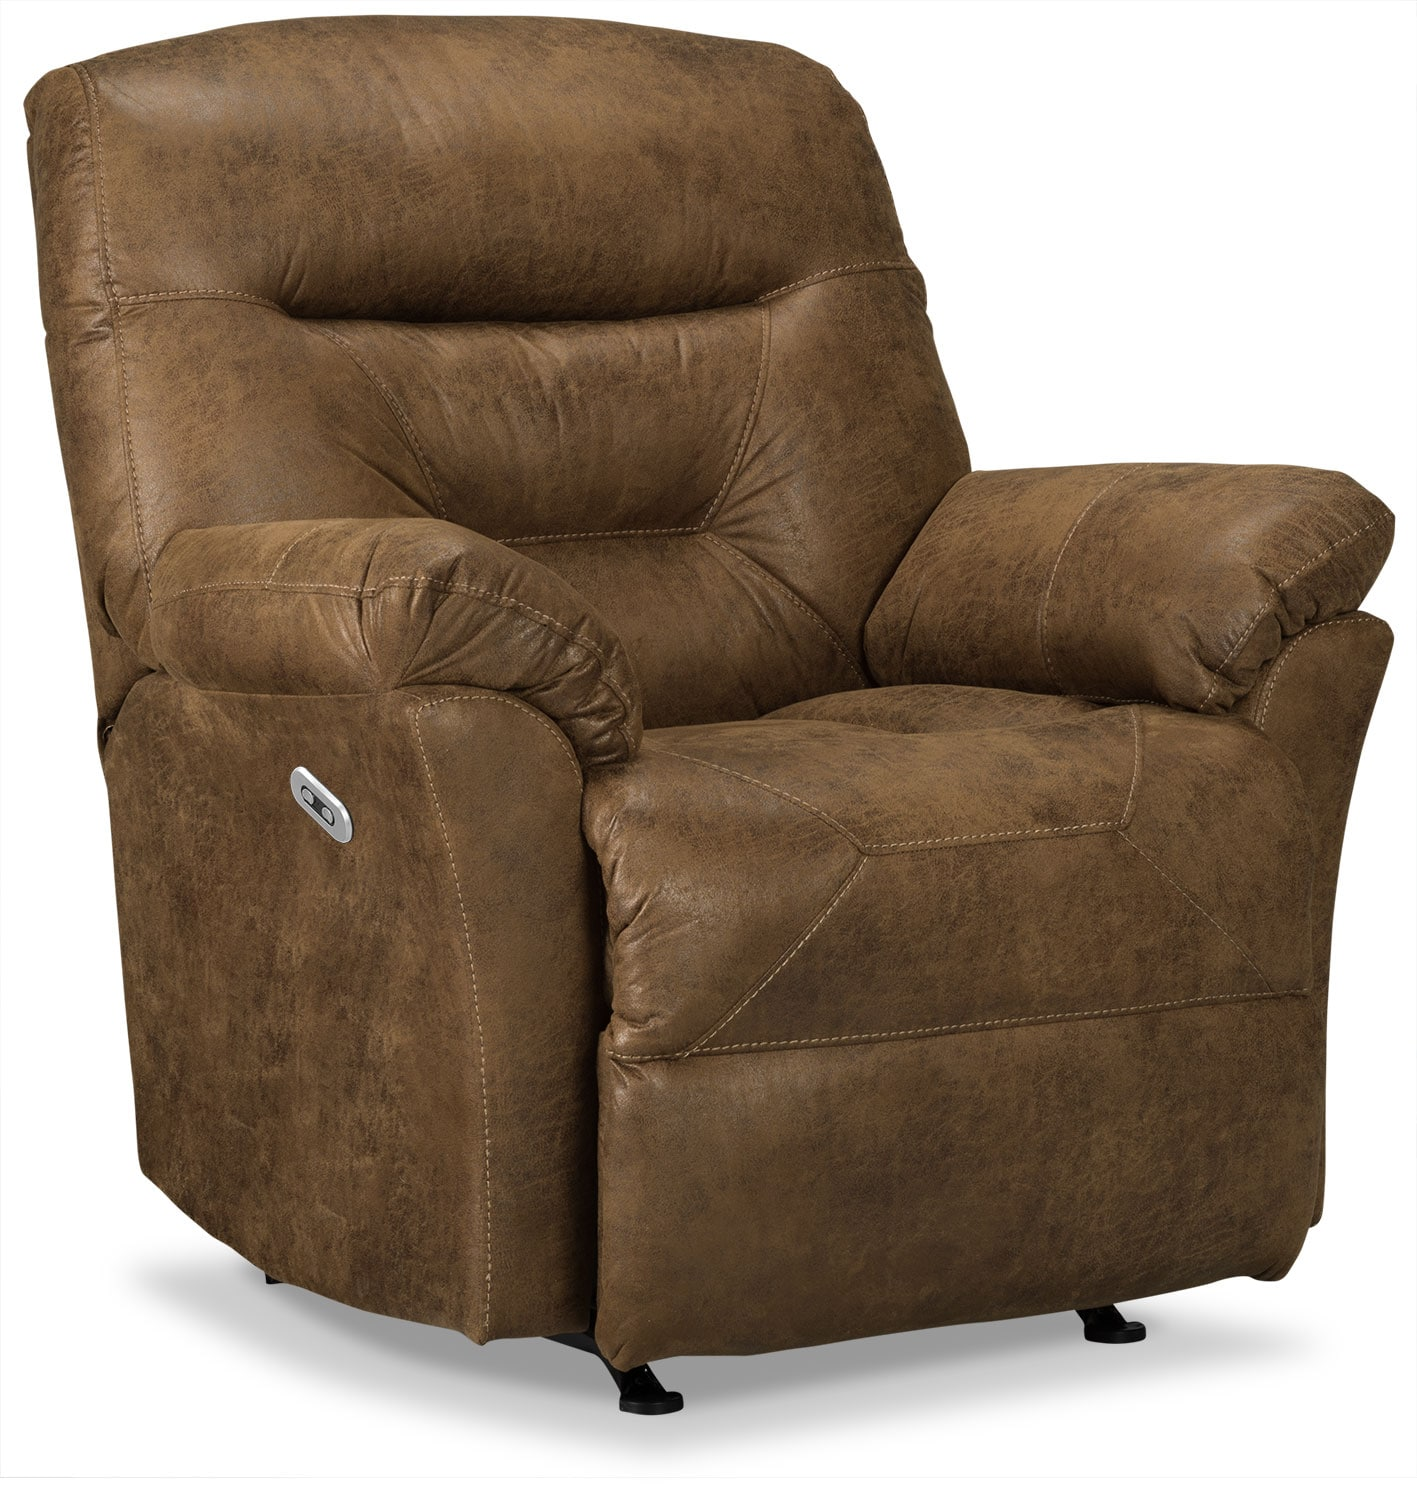 Living Room Furniture - Designed2B Recliner 4579 Leather-Look Fabric Power Recliner - Stout